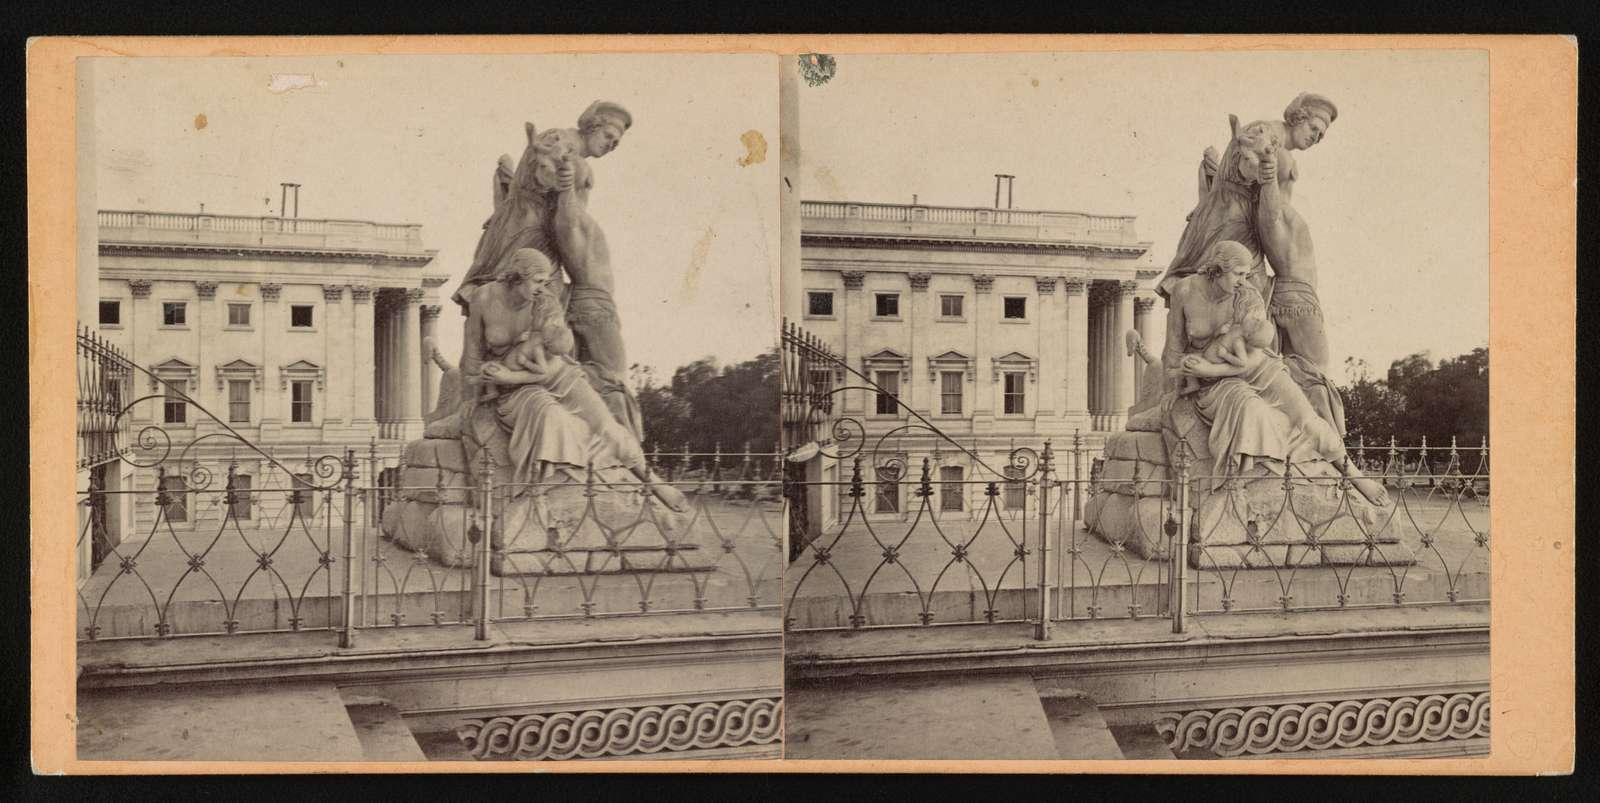 Statuary in front of Capitol, Washington